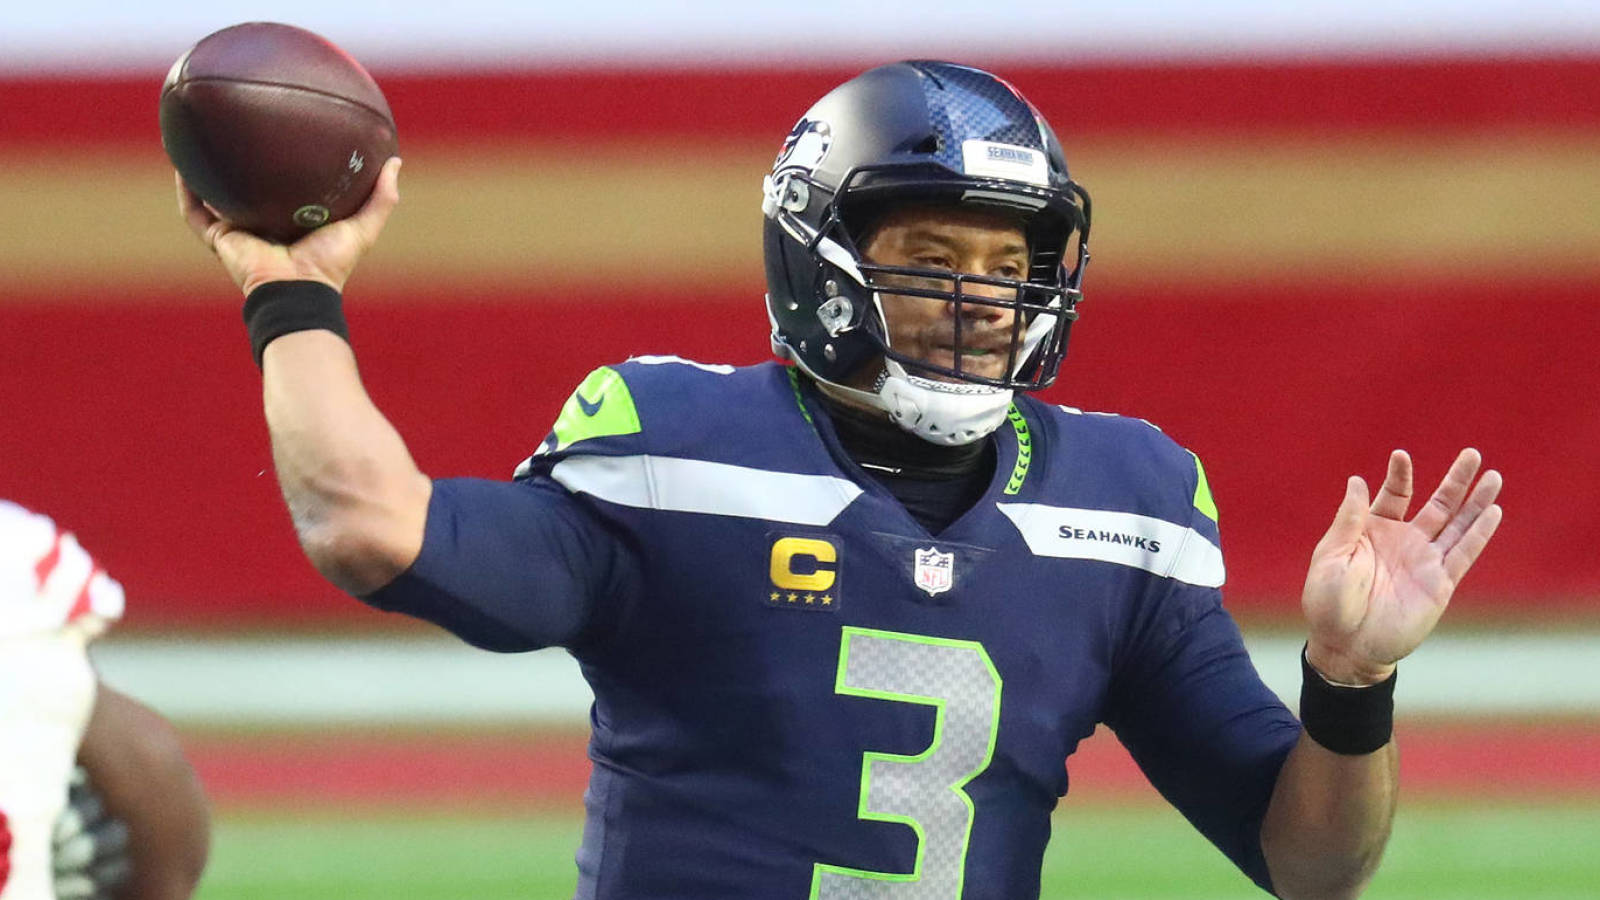 Seahawks' Russell Wilson: 'I didn't request a trade'